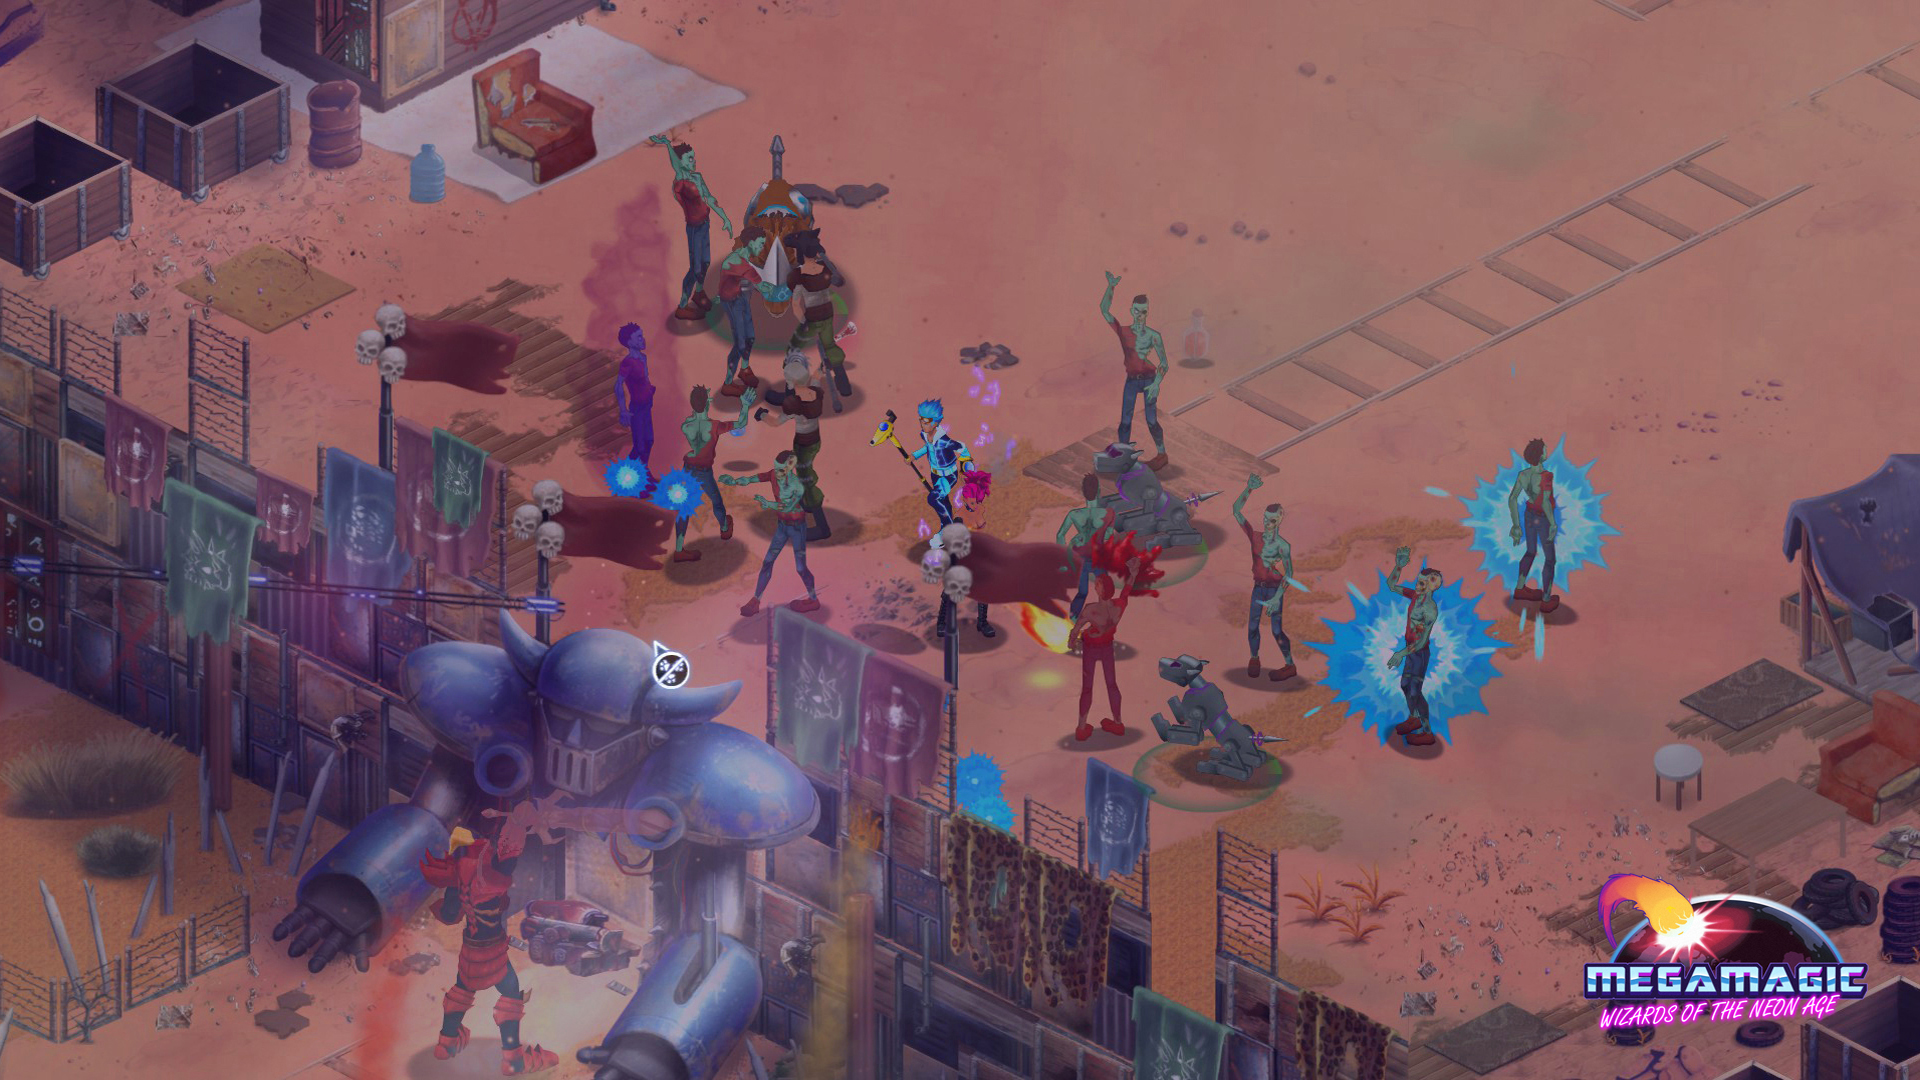 Megamagic: Wizards of the Neon Age screenshot 1